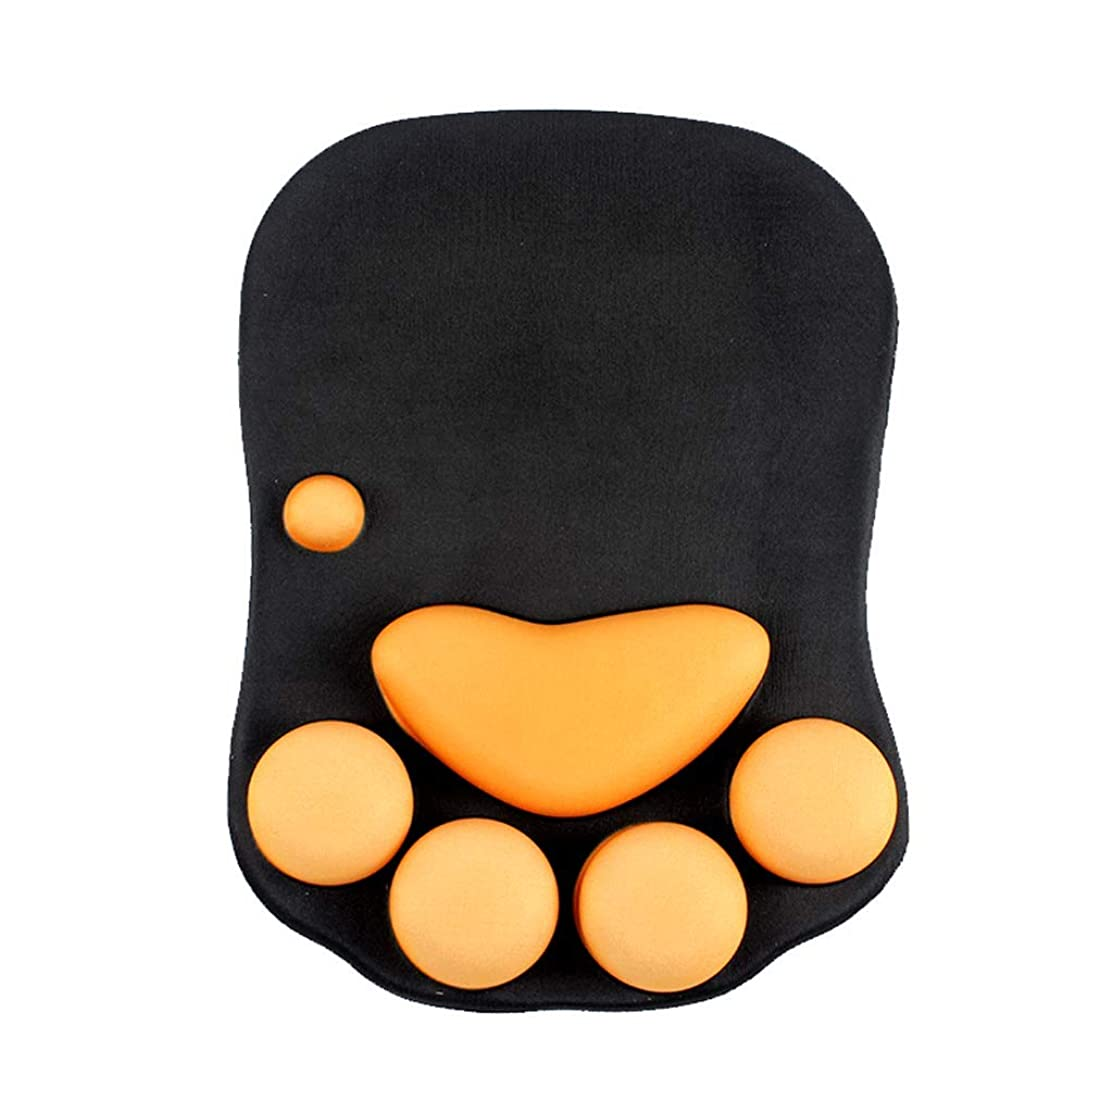 Wrist Guard Mouse Pad-Office Game Notebook Computer Thickening Keyboard Pad, Memory Cotton Care Hands